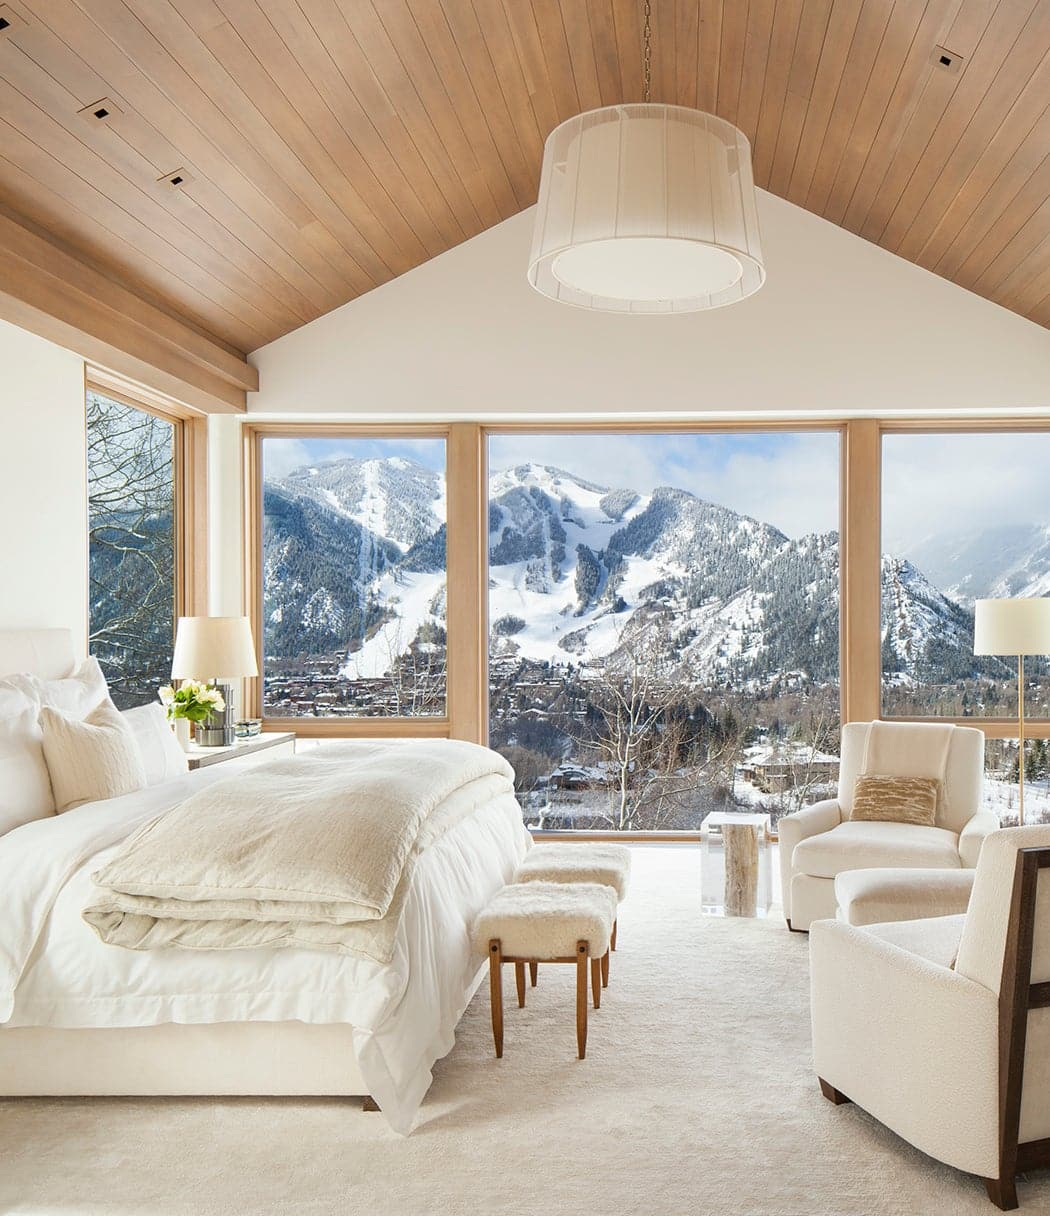 Ski Chalet Interior Design 29 wondrous winter homes & ski chalets | the study